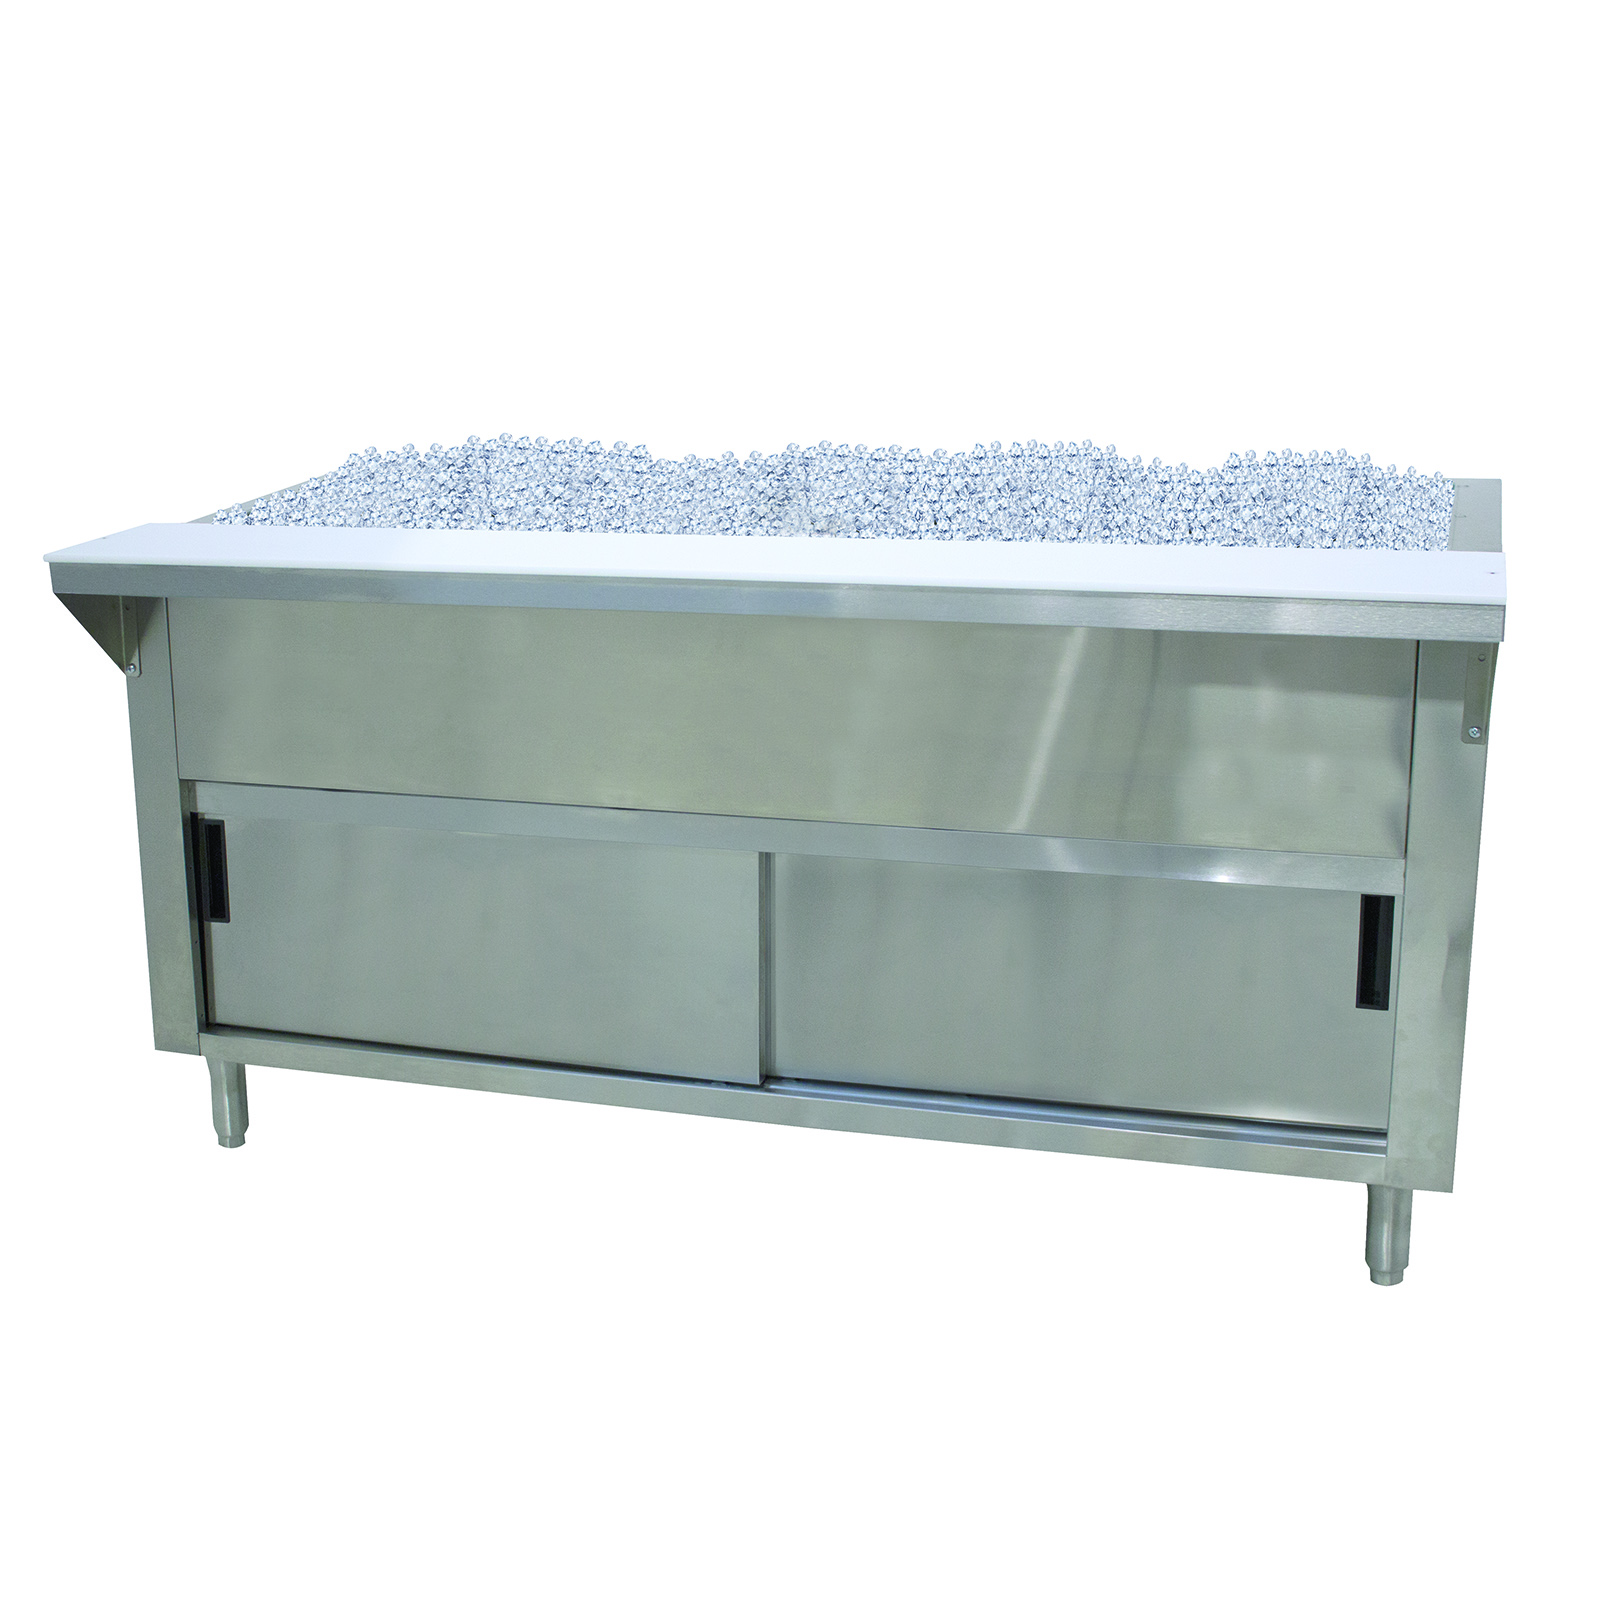 Advance Tabco CPU-5-DR serving counter, cold food